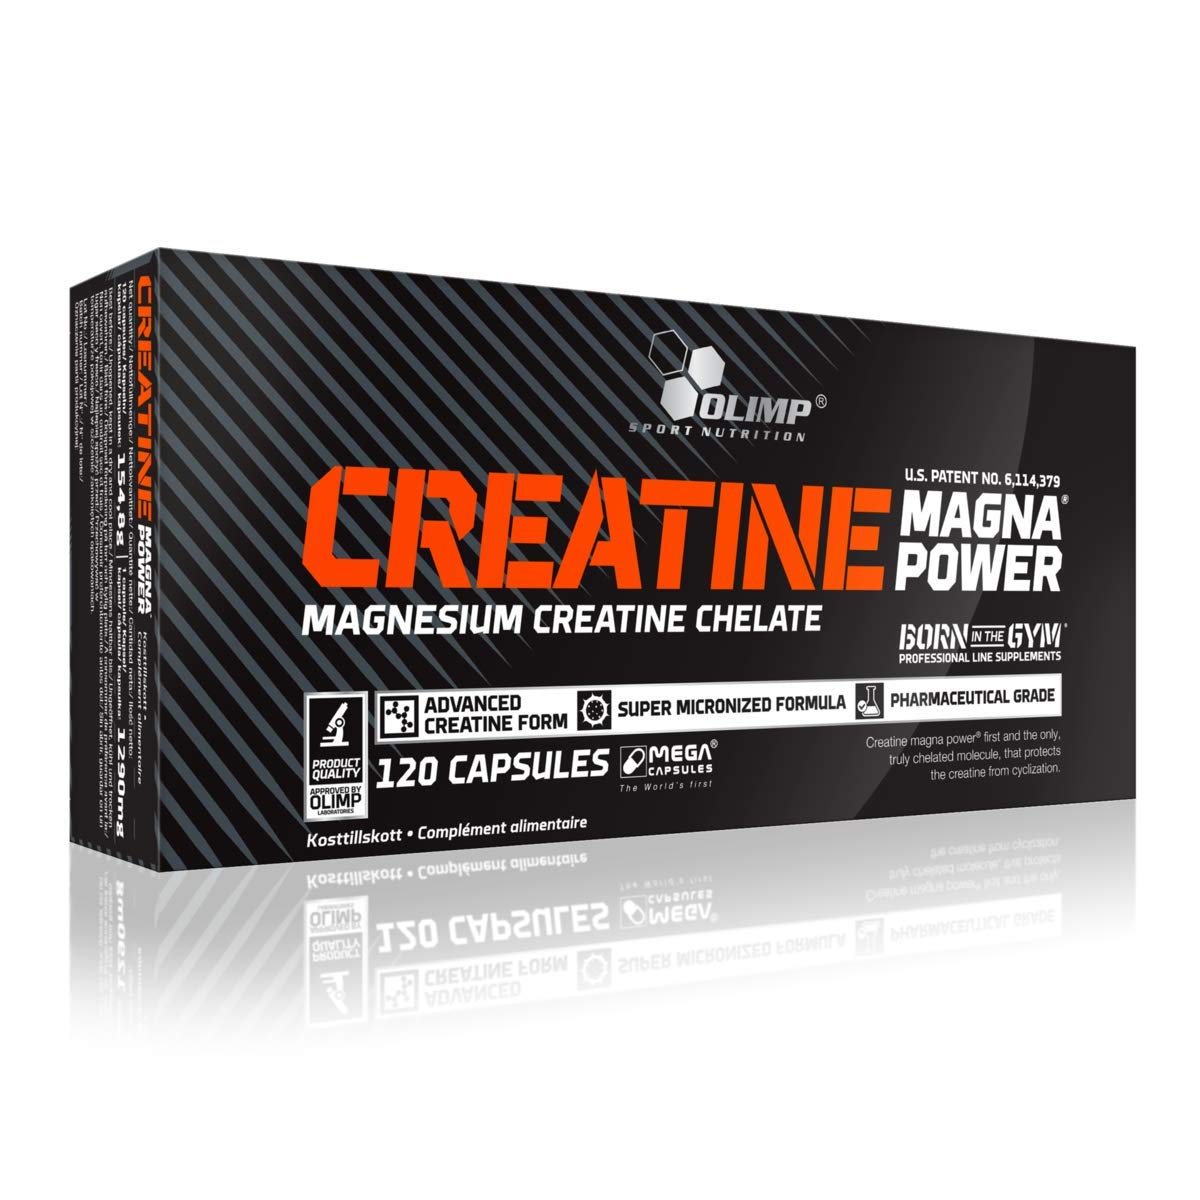 Creatine Magna Power - 120 mega caps by Olimp Nutrition M by Olimp Nutrition